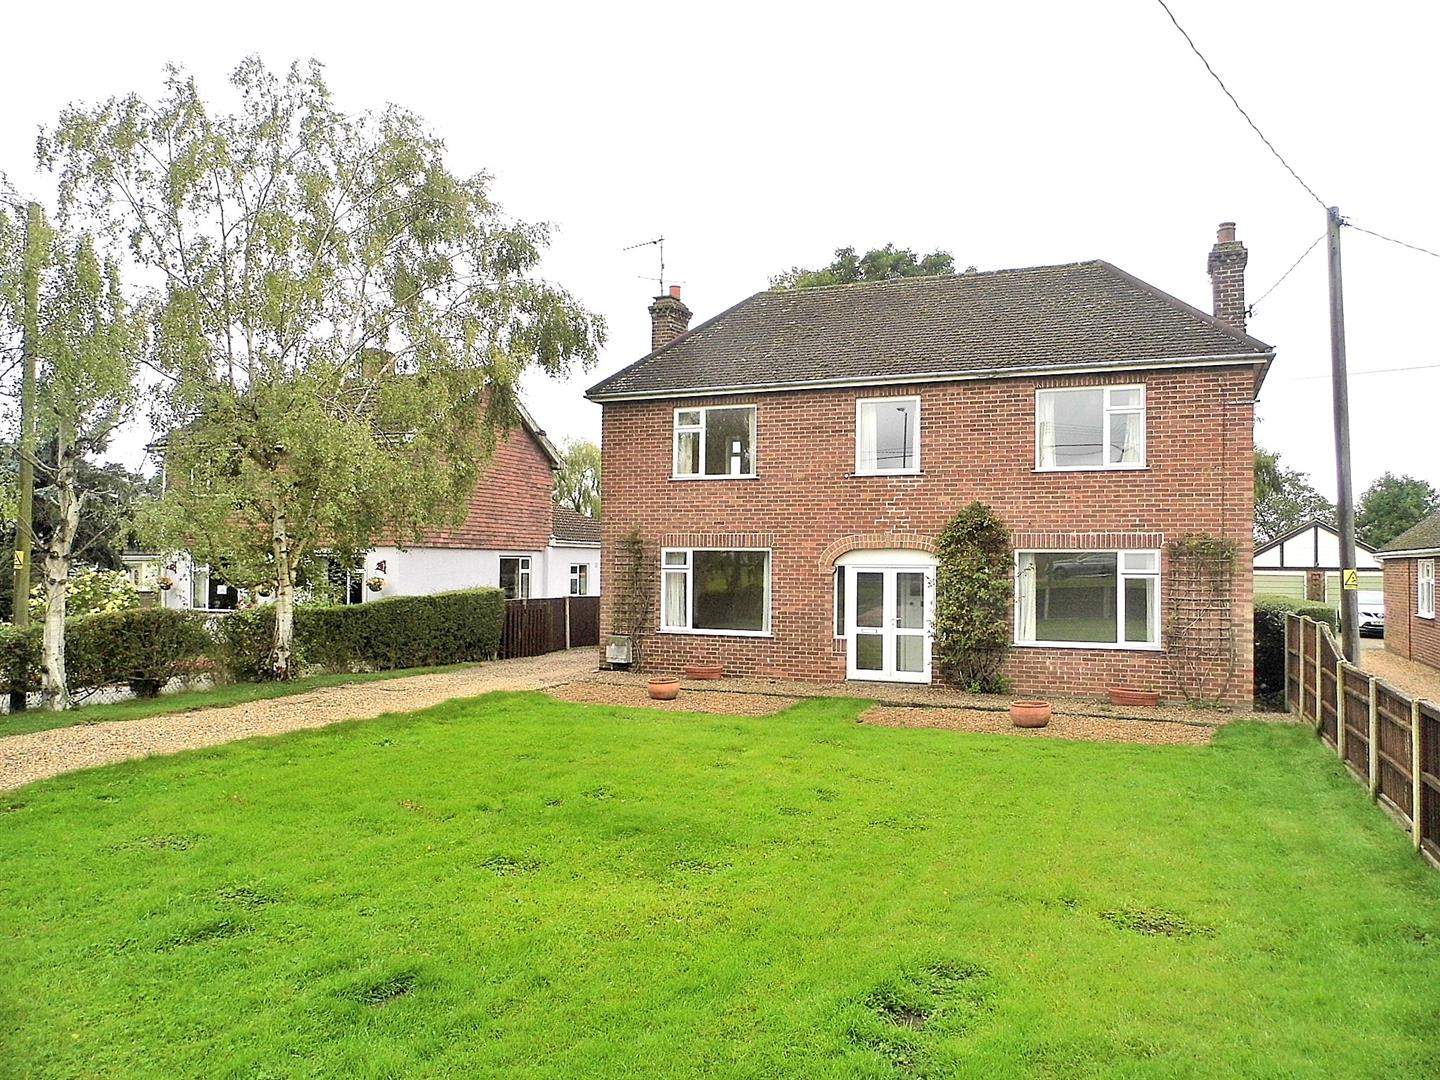 4 bed detached house for sale in West Winch Road, King's Lynn  - Property Image 1